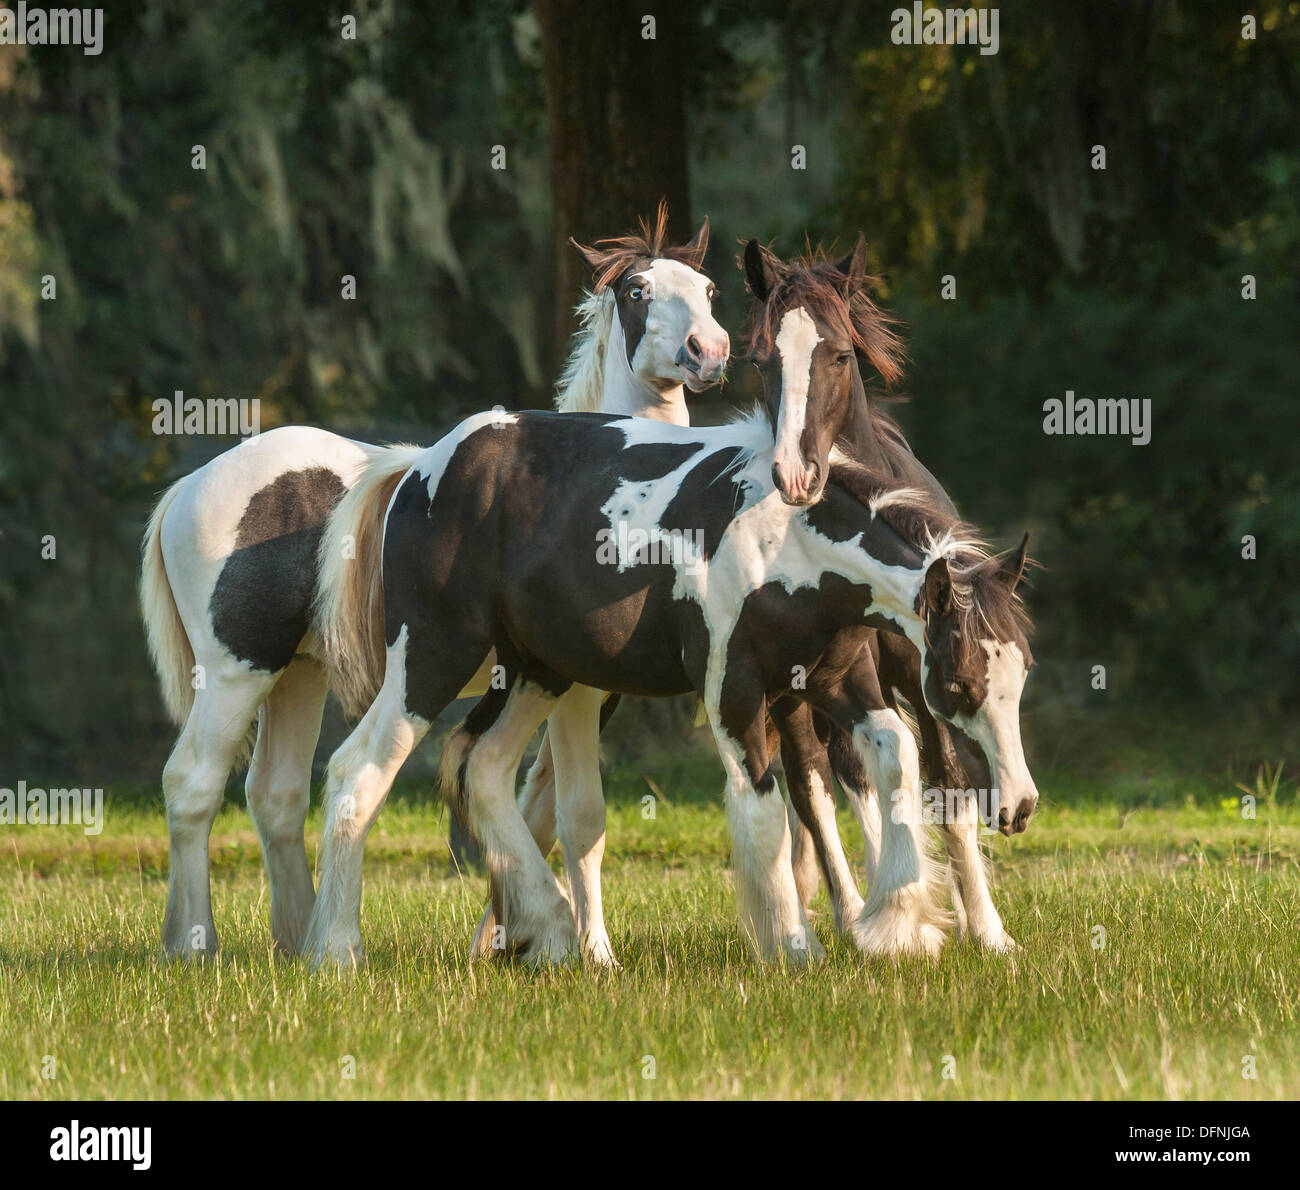 Gypsy weanling horse foals - Stock Image